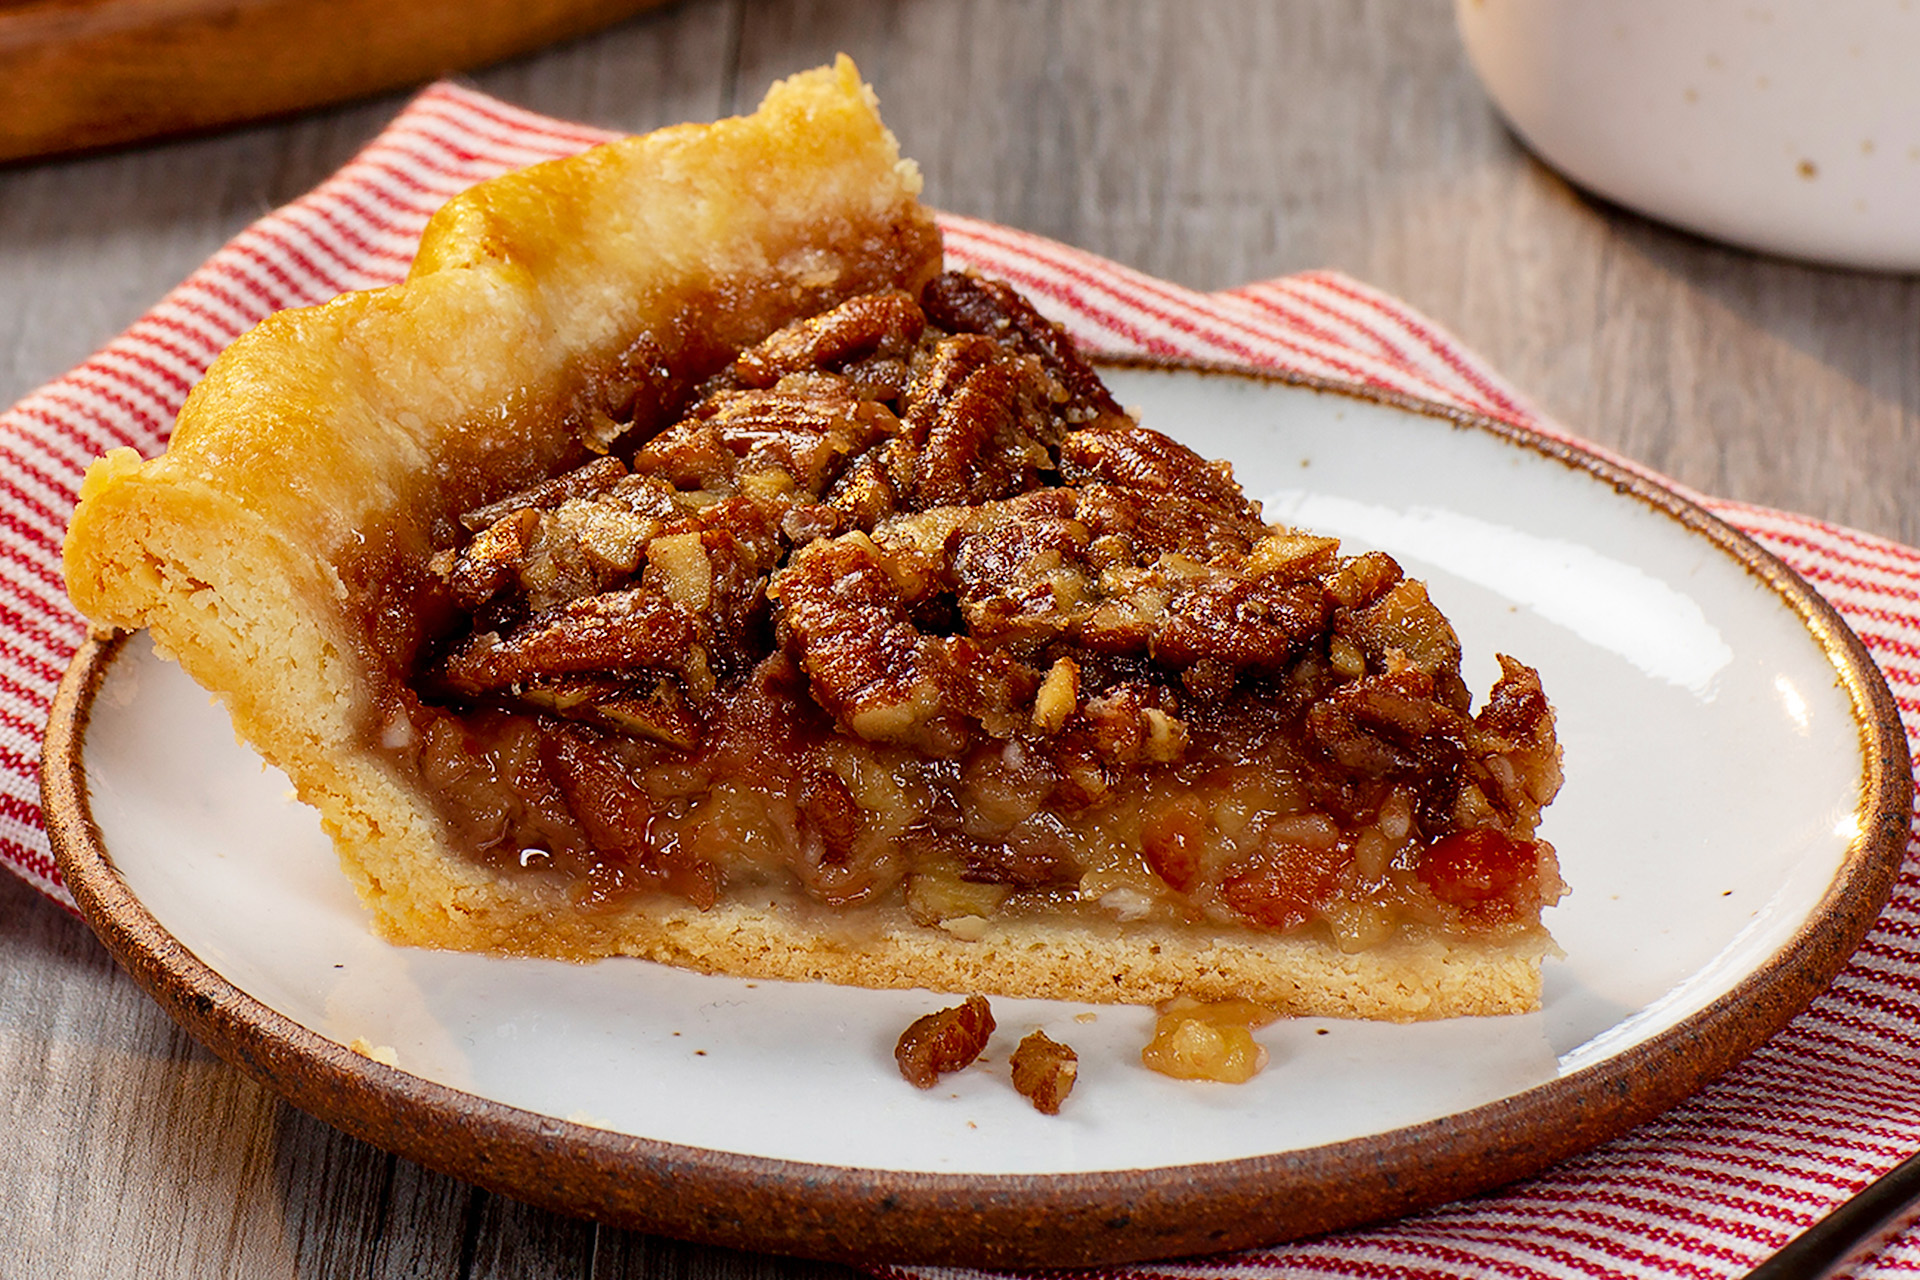 One piece of pinto bean pecan pie on a white plate